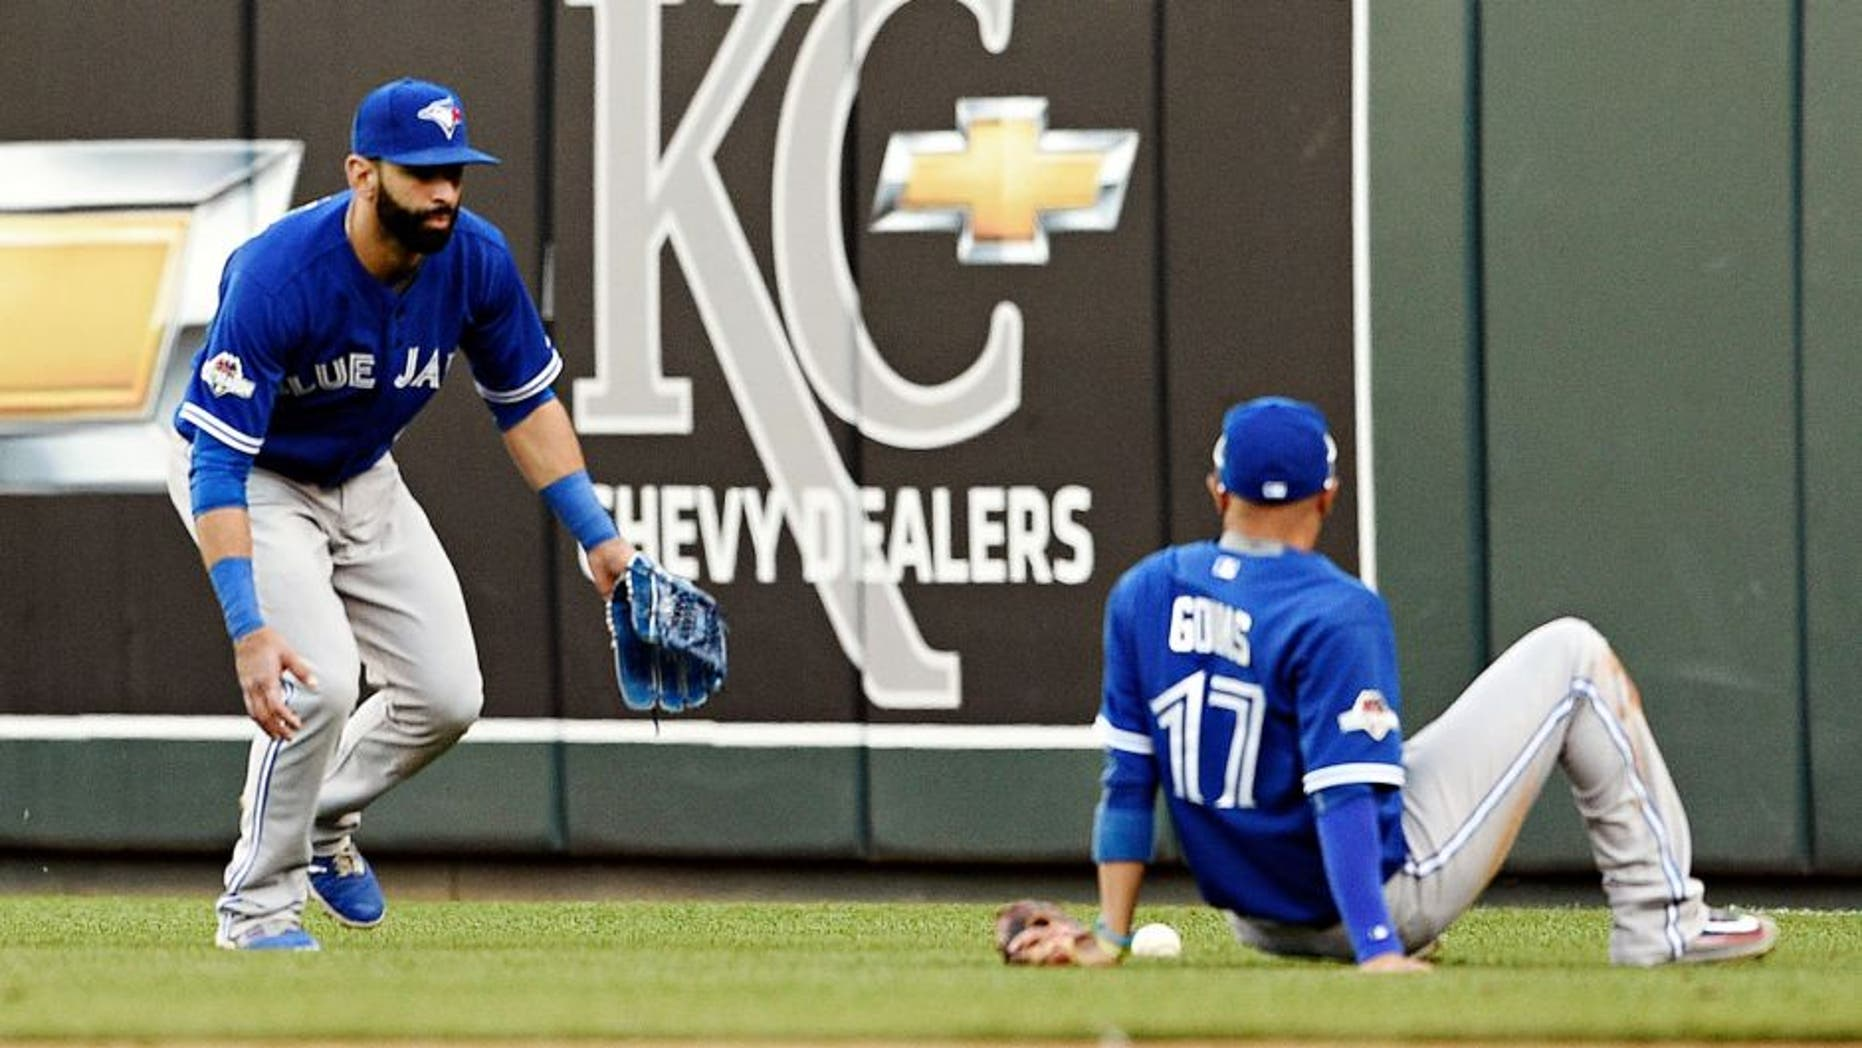 Toronto Blue Jays second baseman Ryan Goins sits on the ground and looks at the fly ball tha fell between himself and right fielder Jose Bautista, left, on a ball hit by the Kansas City Royals' Ben Zobrist in the seventh inning during Game 2 of the ALCS on at Kauffman Stadium in Kansas City, Mo., on Saturday, Oct. 17, 2015. (Shane Keyser/Kansas City Star/TNS via Getty Images)